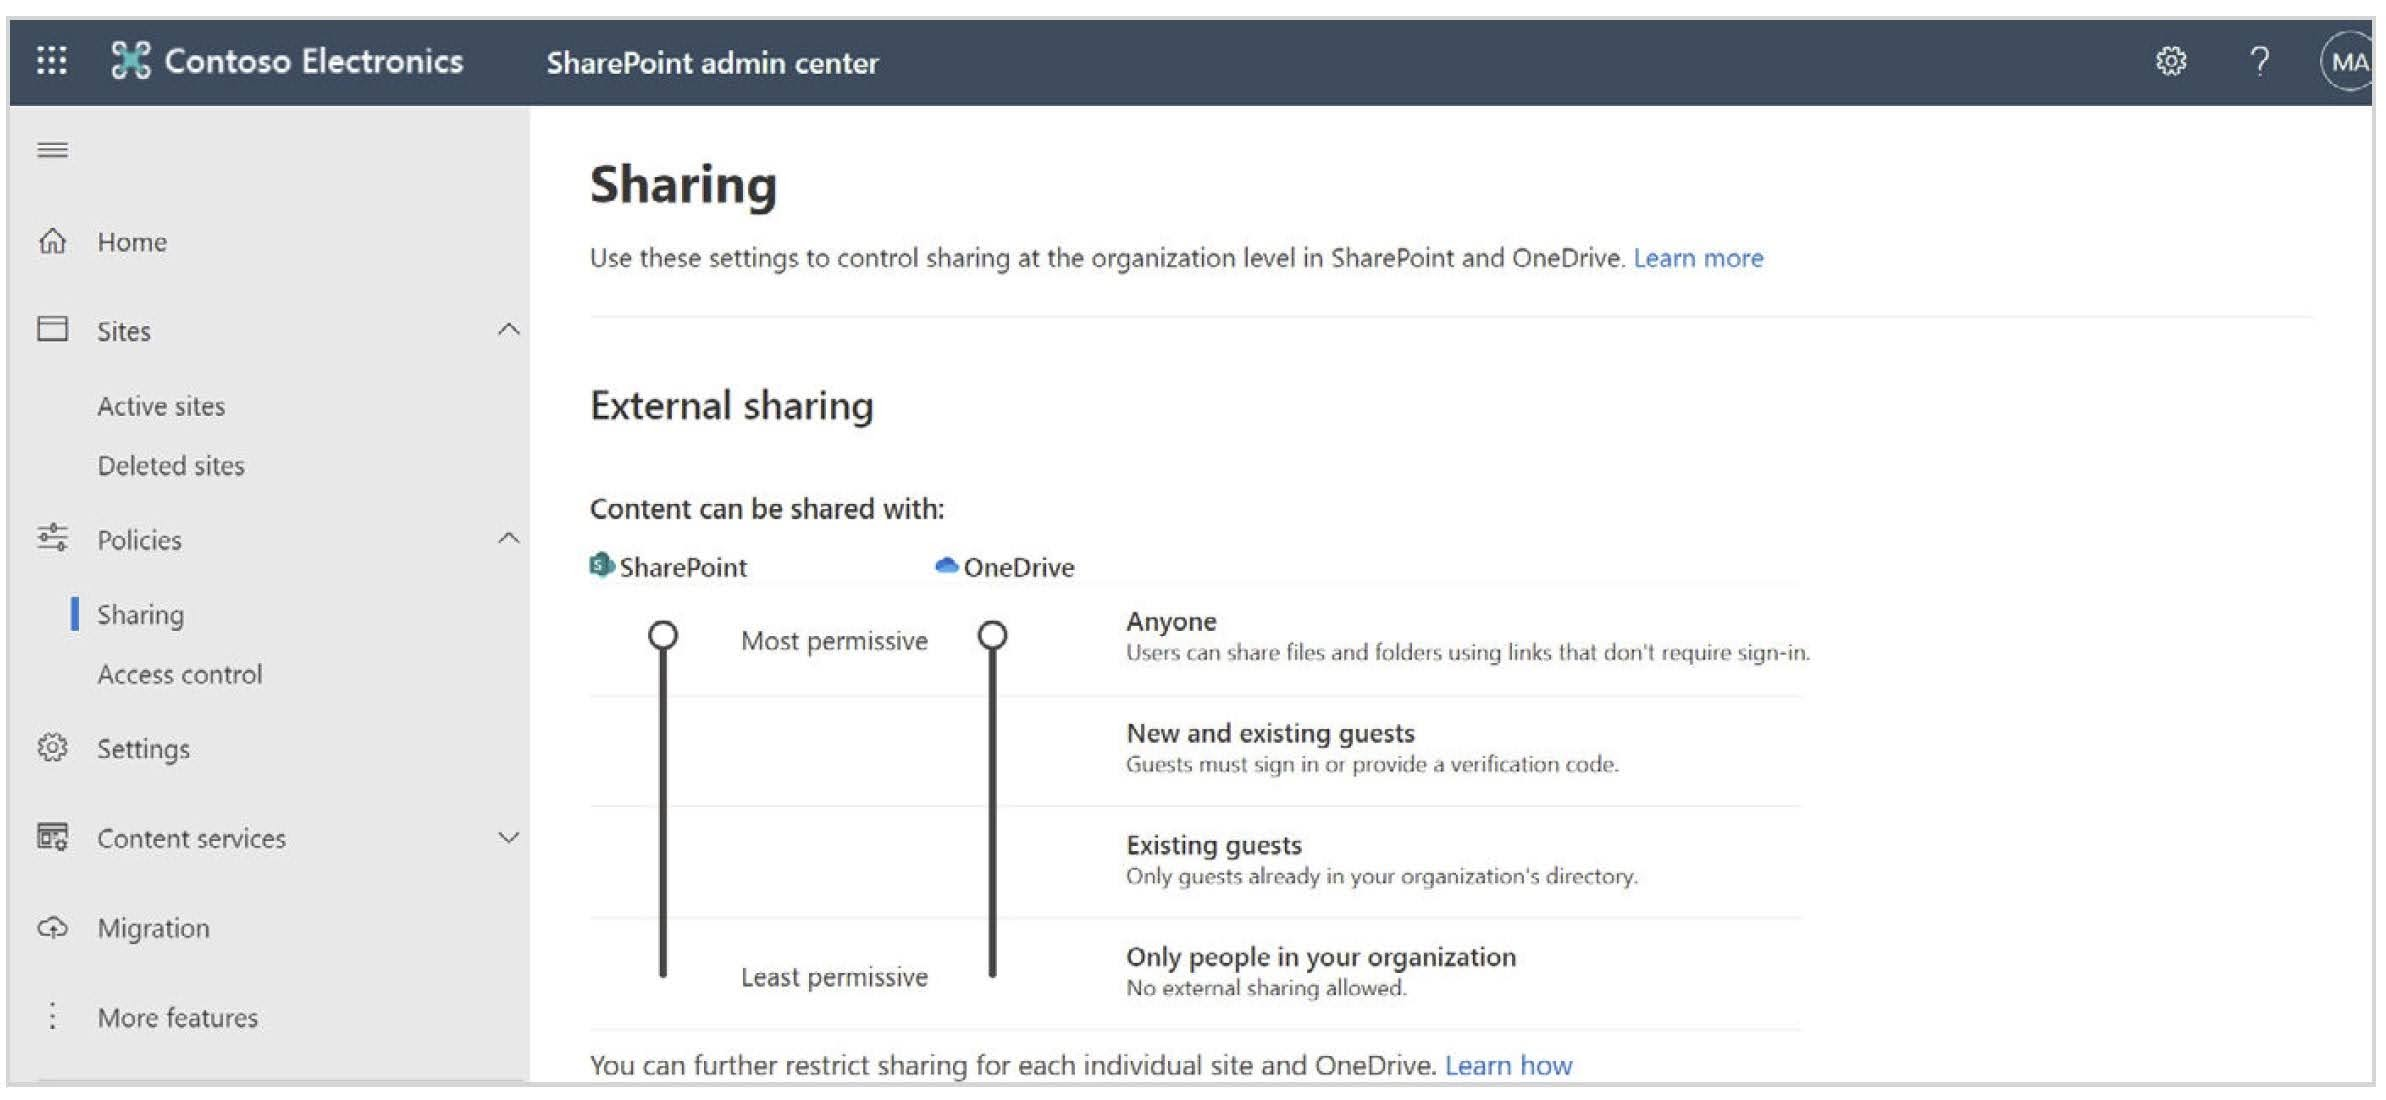 Settings to control sharing at the organization level in SharePoint and OneDrive.